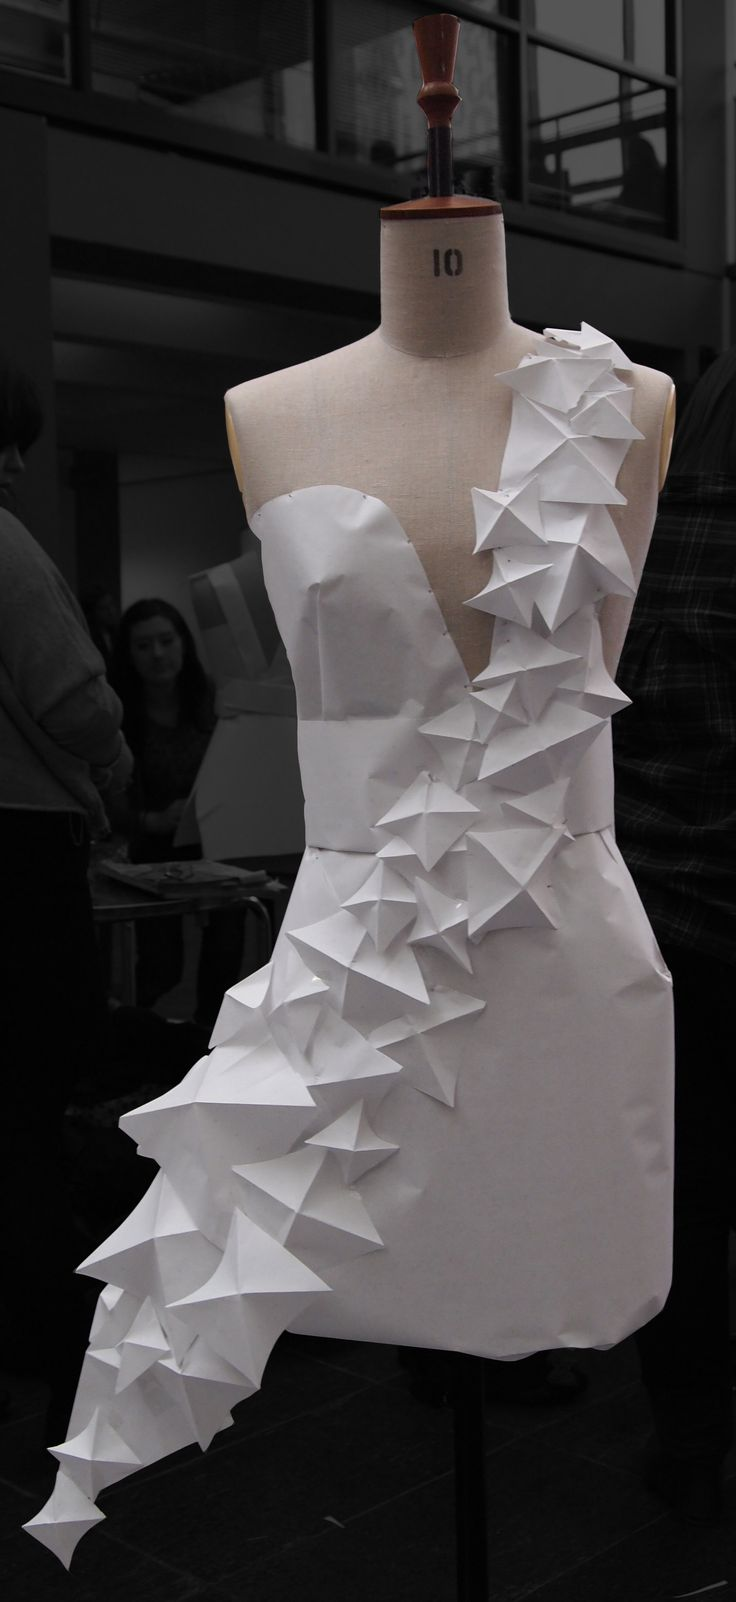 #Gaga inspired #origami style paper dress by 2010 stage 1 #RGU BA (Hons) Fashion Management students.